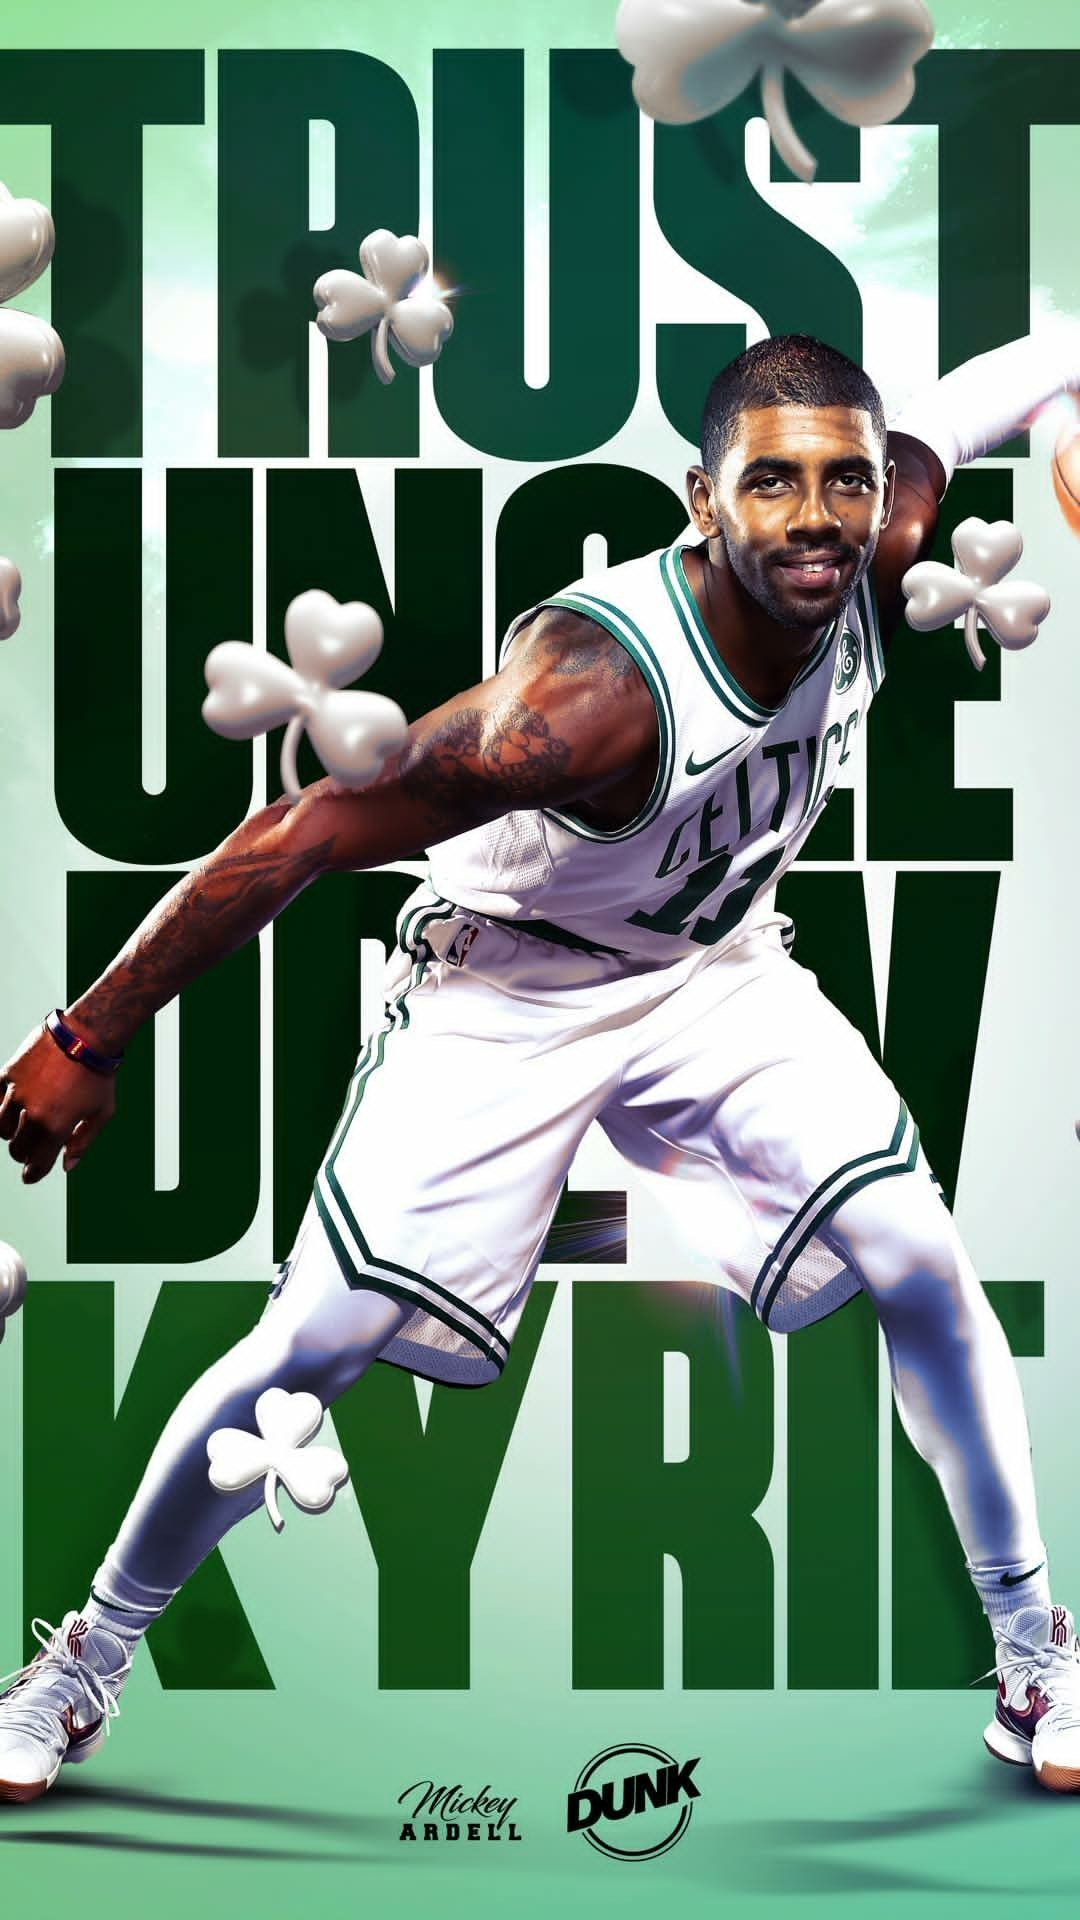 Kyrie Irving Wallpaper Irving Wallpapers Kyrie Irving Kyrie Irving Celtics